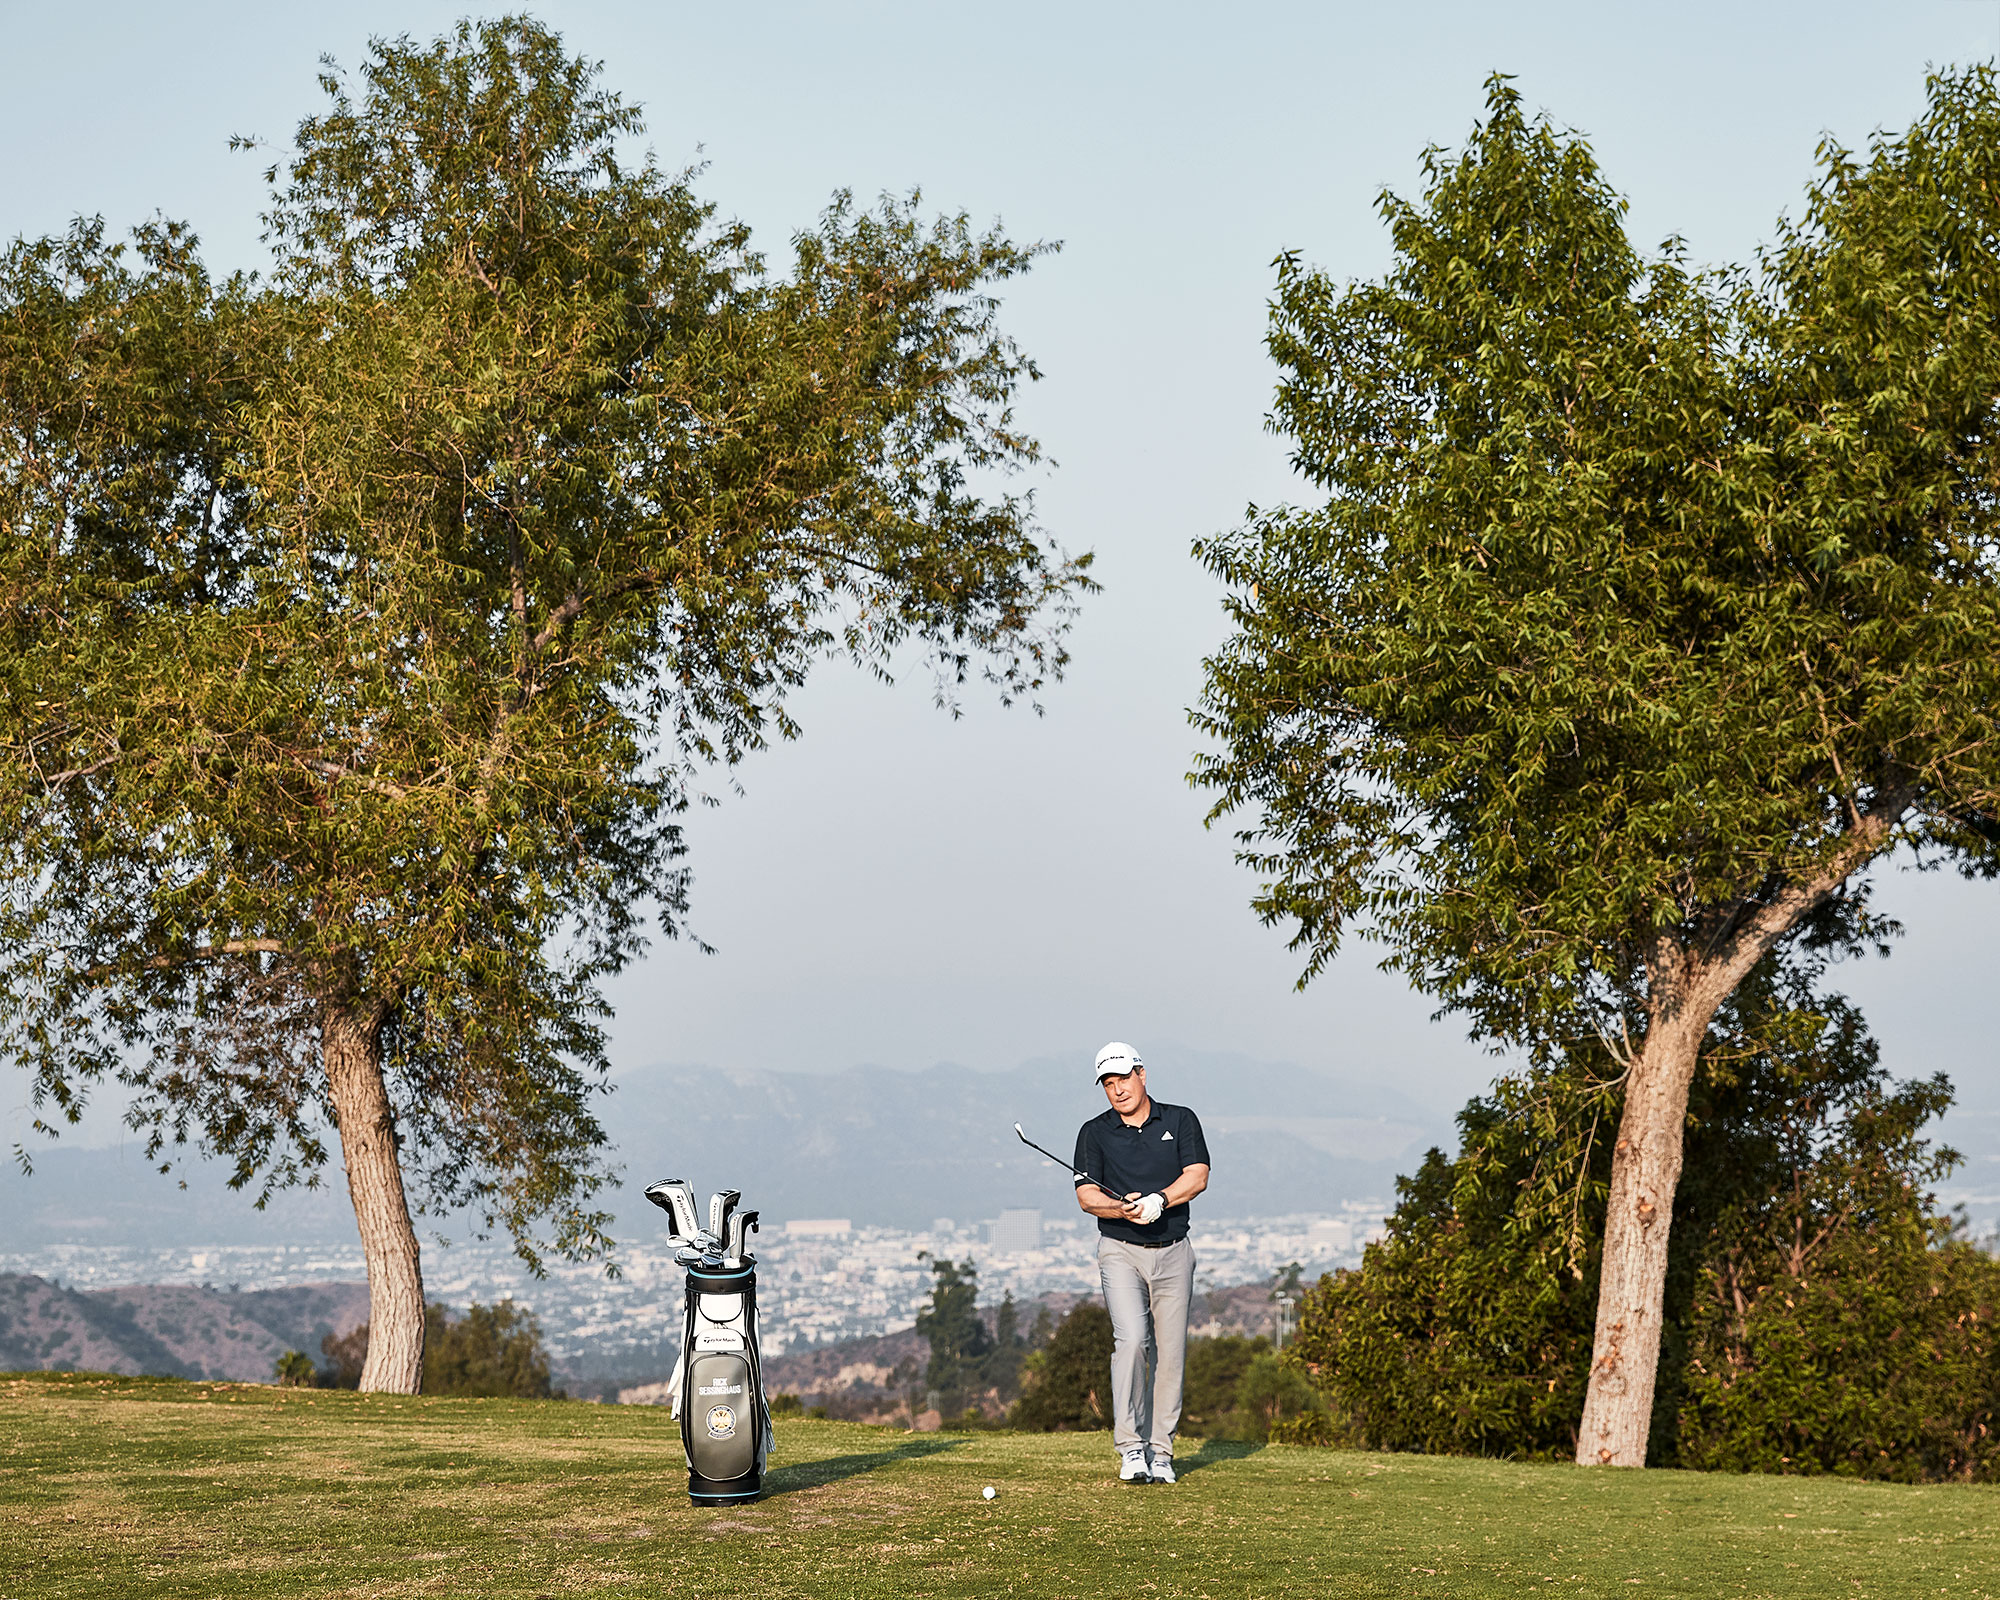 Rick Sessinghaus - Golf Magazine  - Stephen Denton Photography -  Los Angeles, CA Commercial Photographer